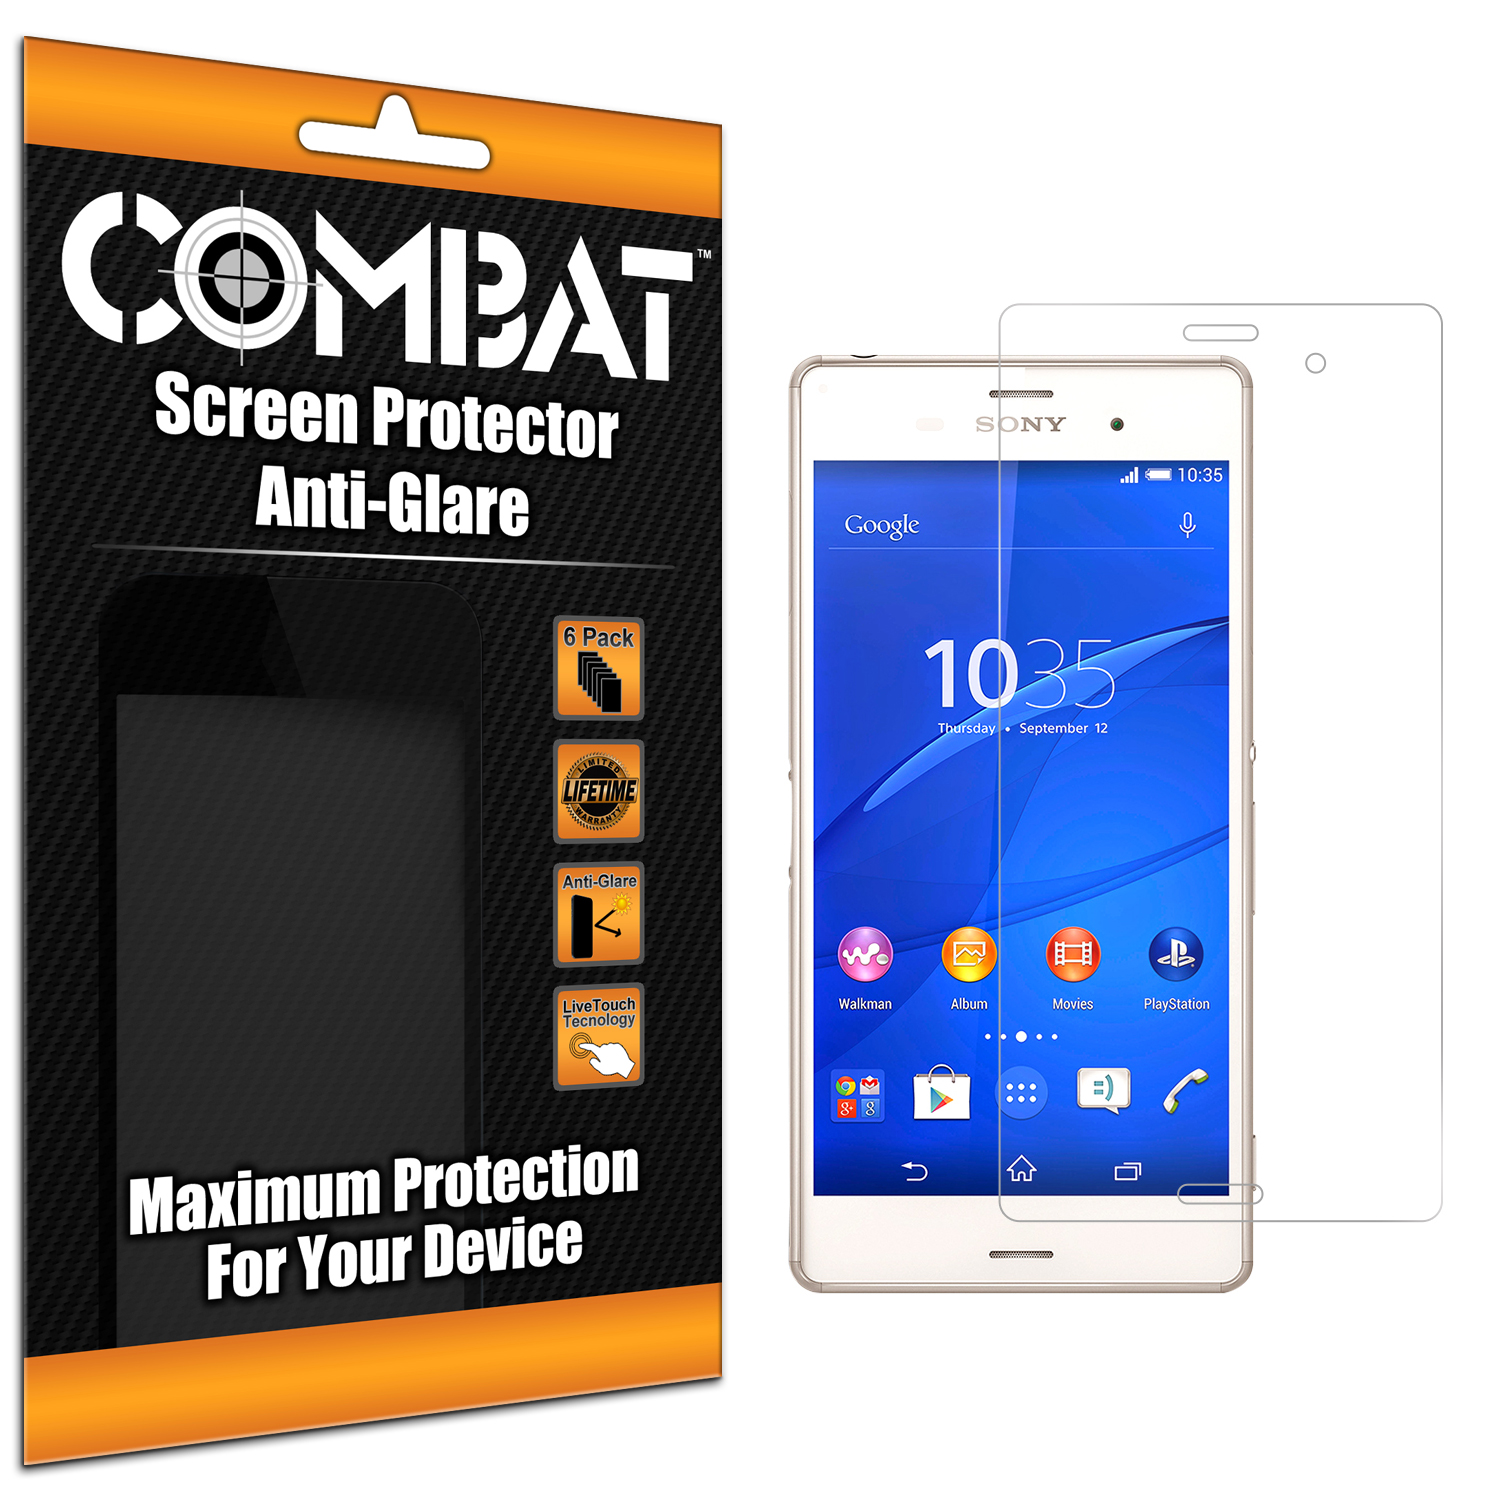 Sony Xperia Z3 Combat 6 Pack Anti-Glare Matte Screen Protector